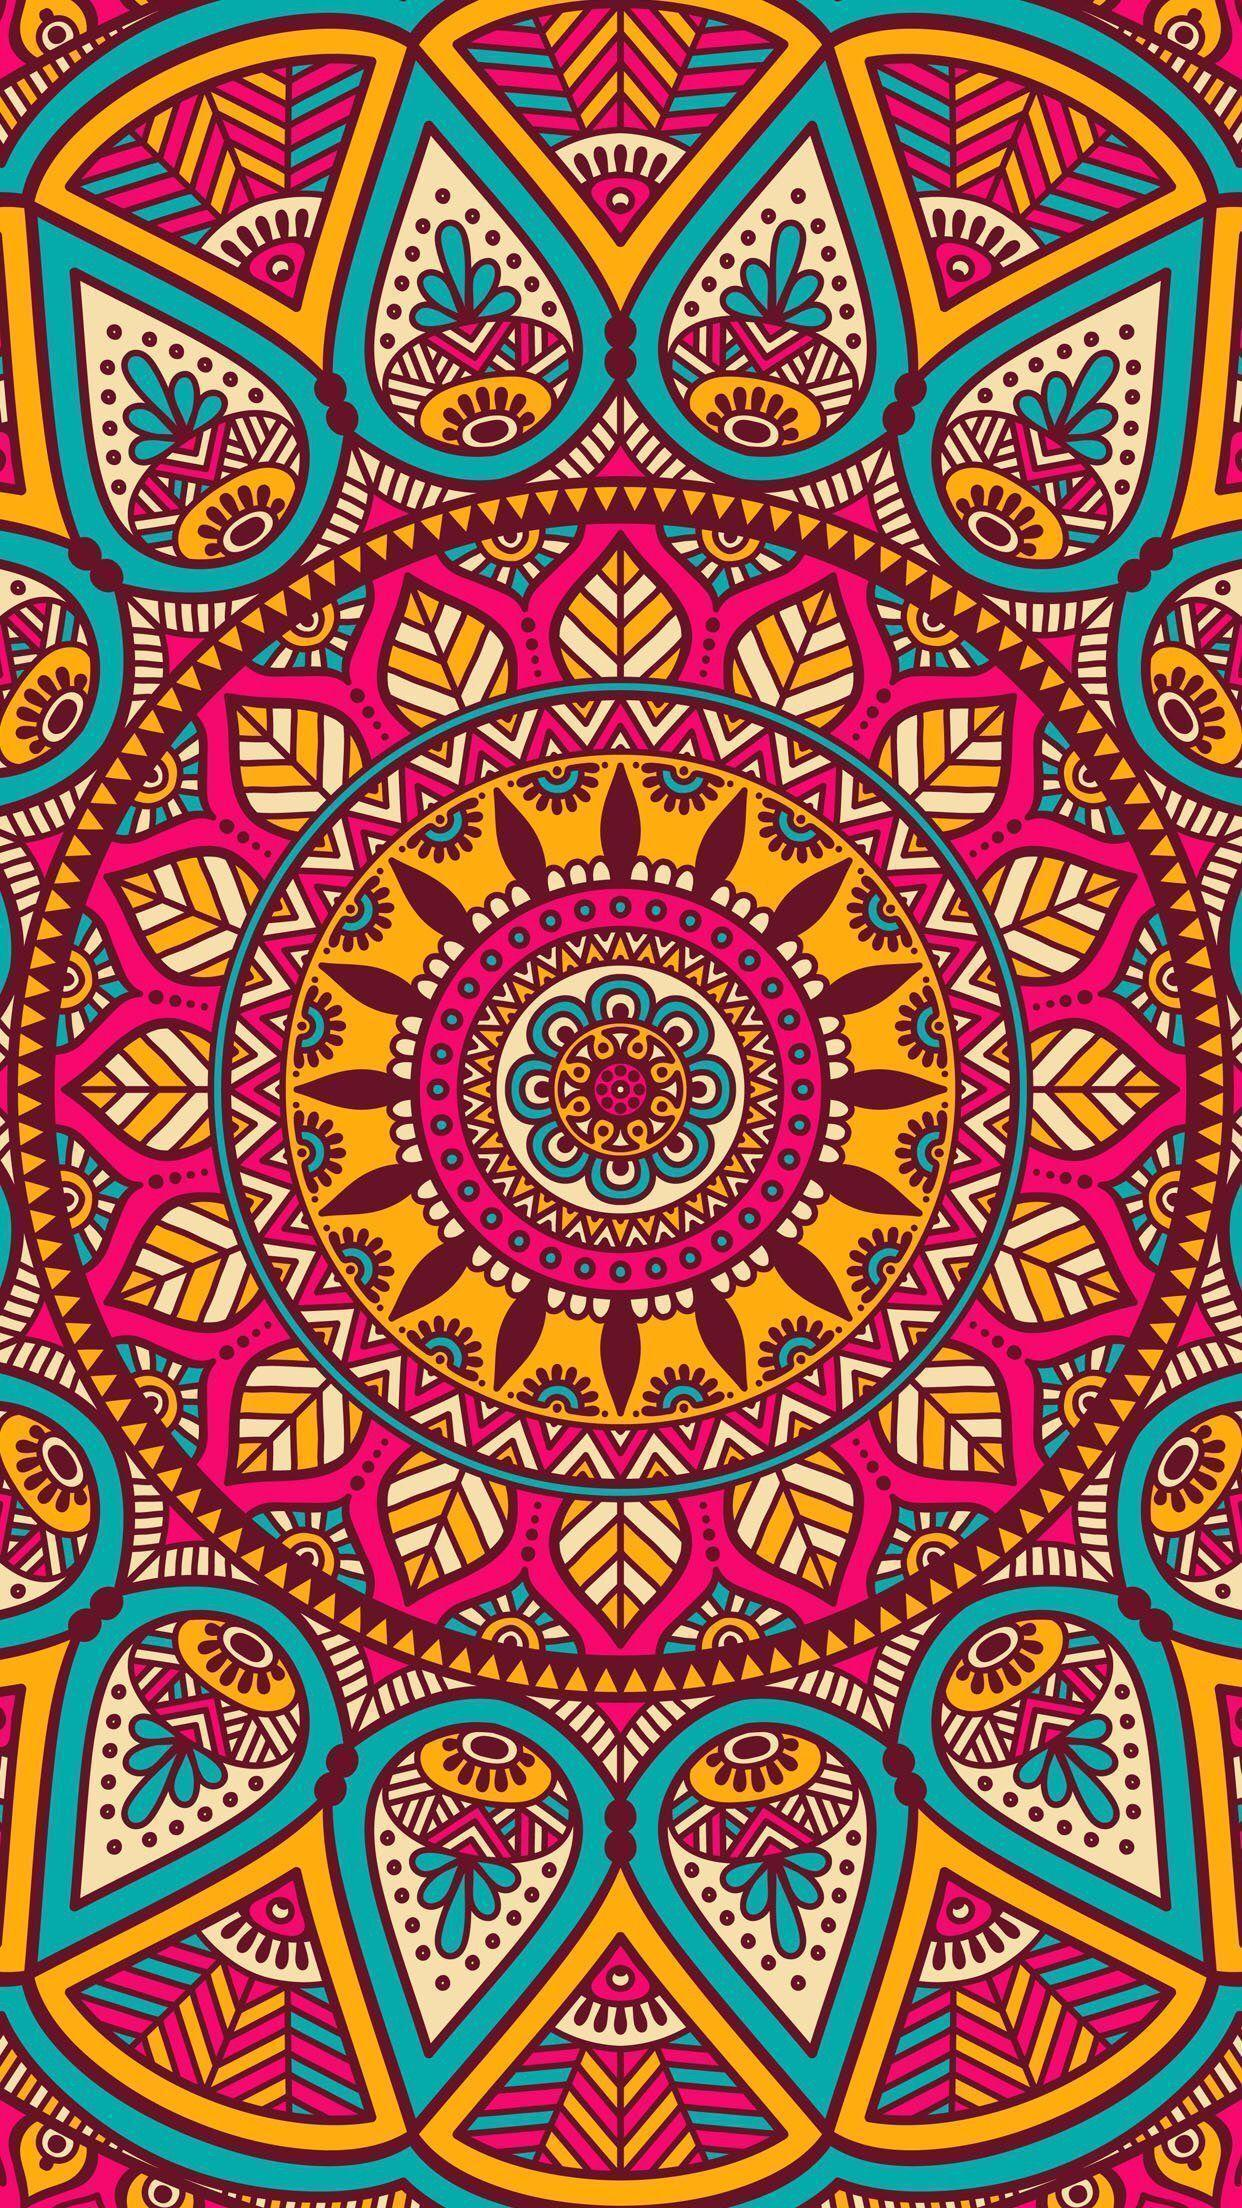 FREE mandala art wallpaper for iPhone and iPod Touch | Techno ...